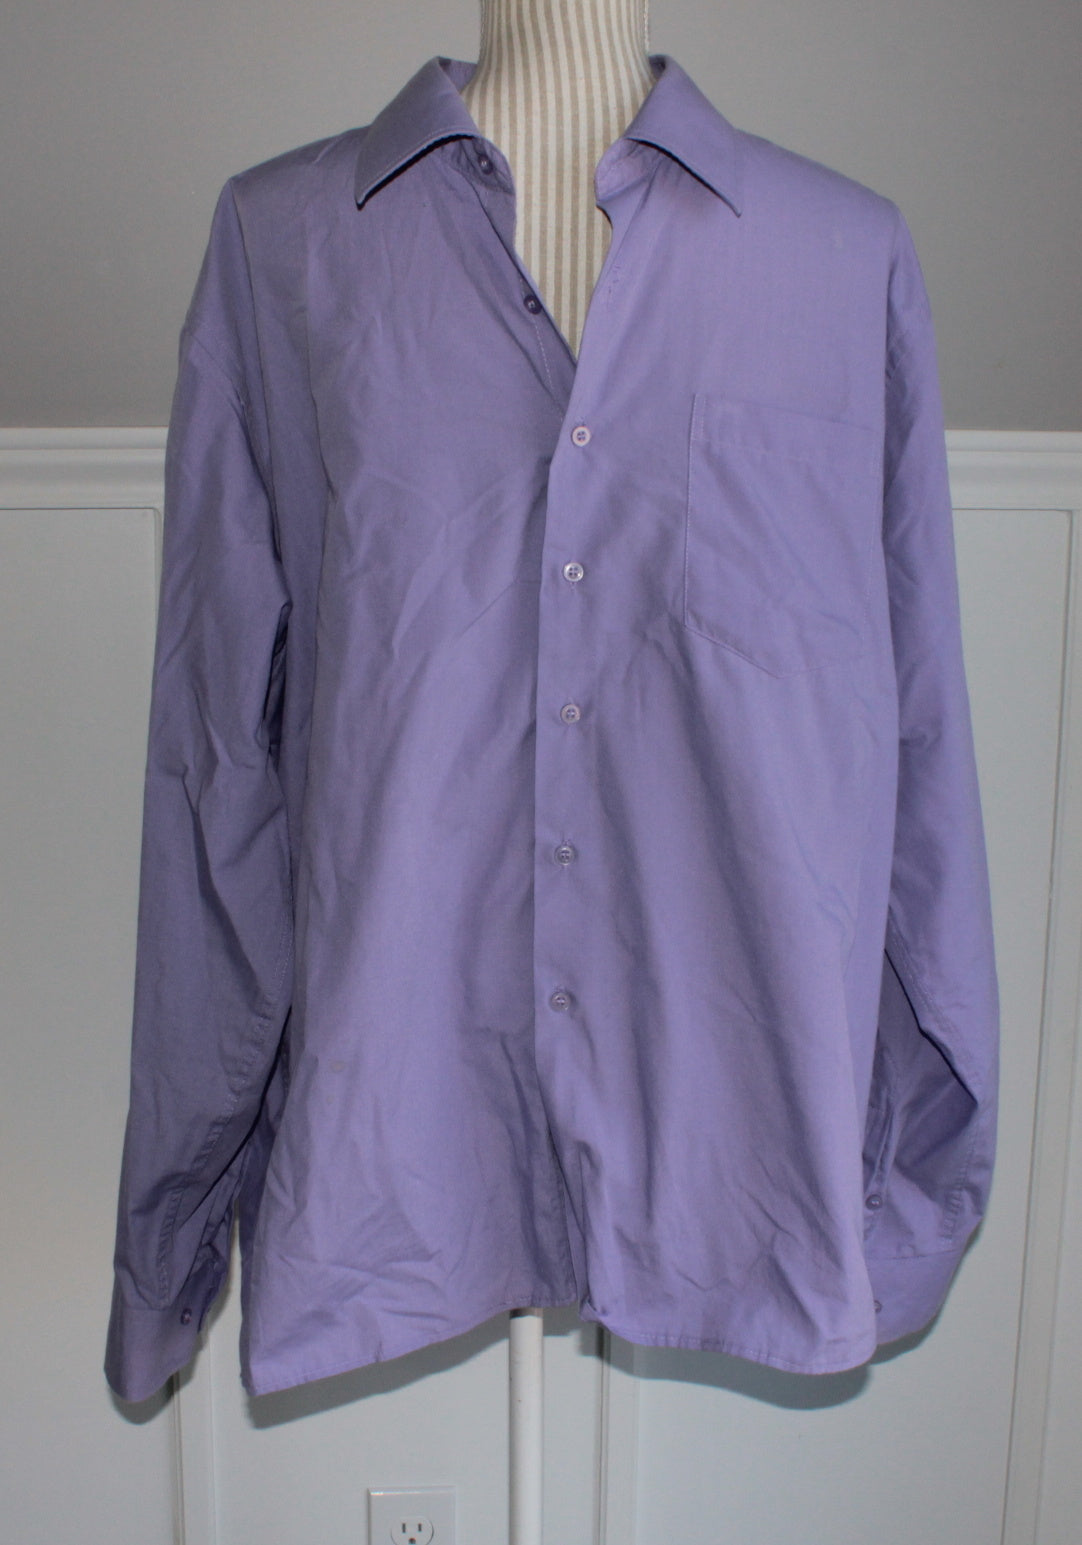 GIOVANNI MENS PURPLE DRESS SHIRT XL EUC